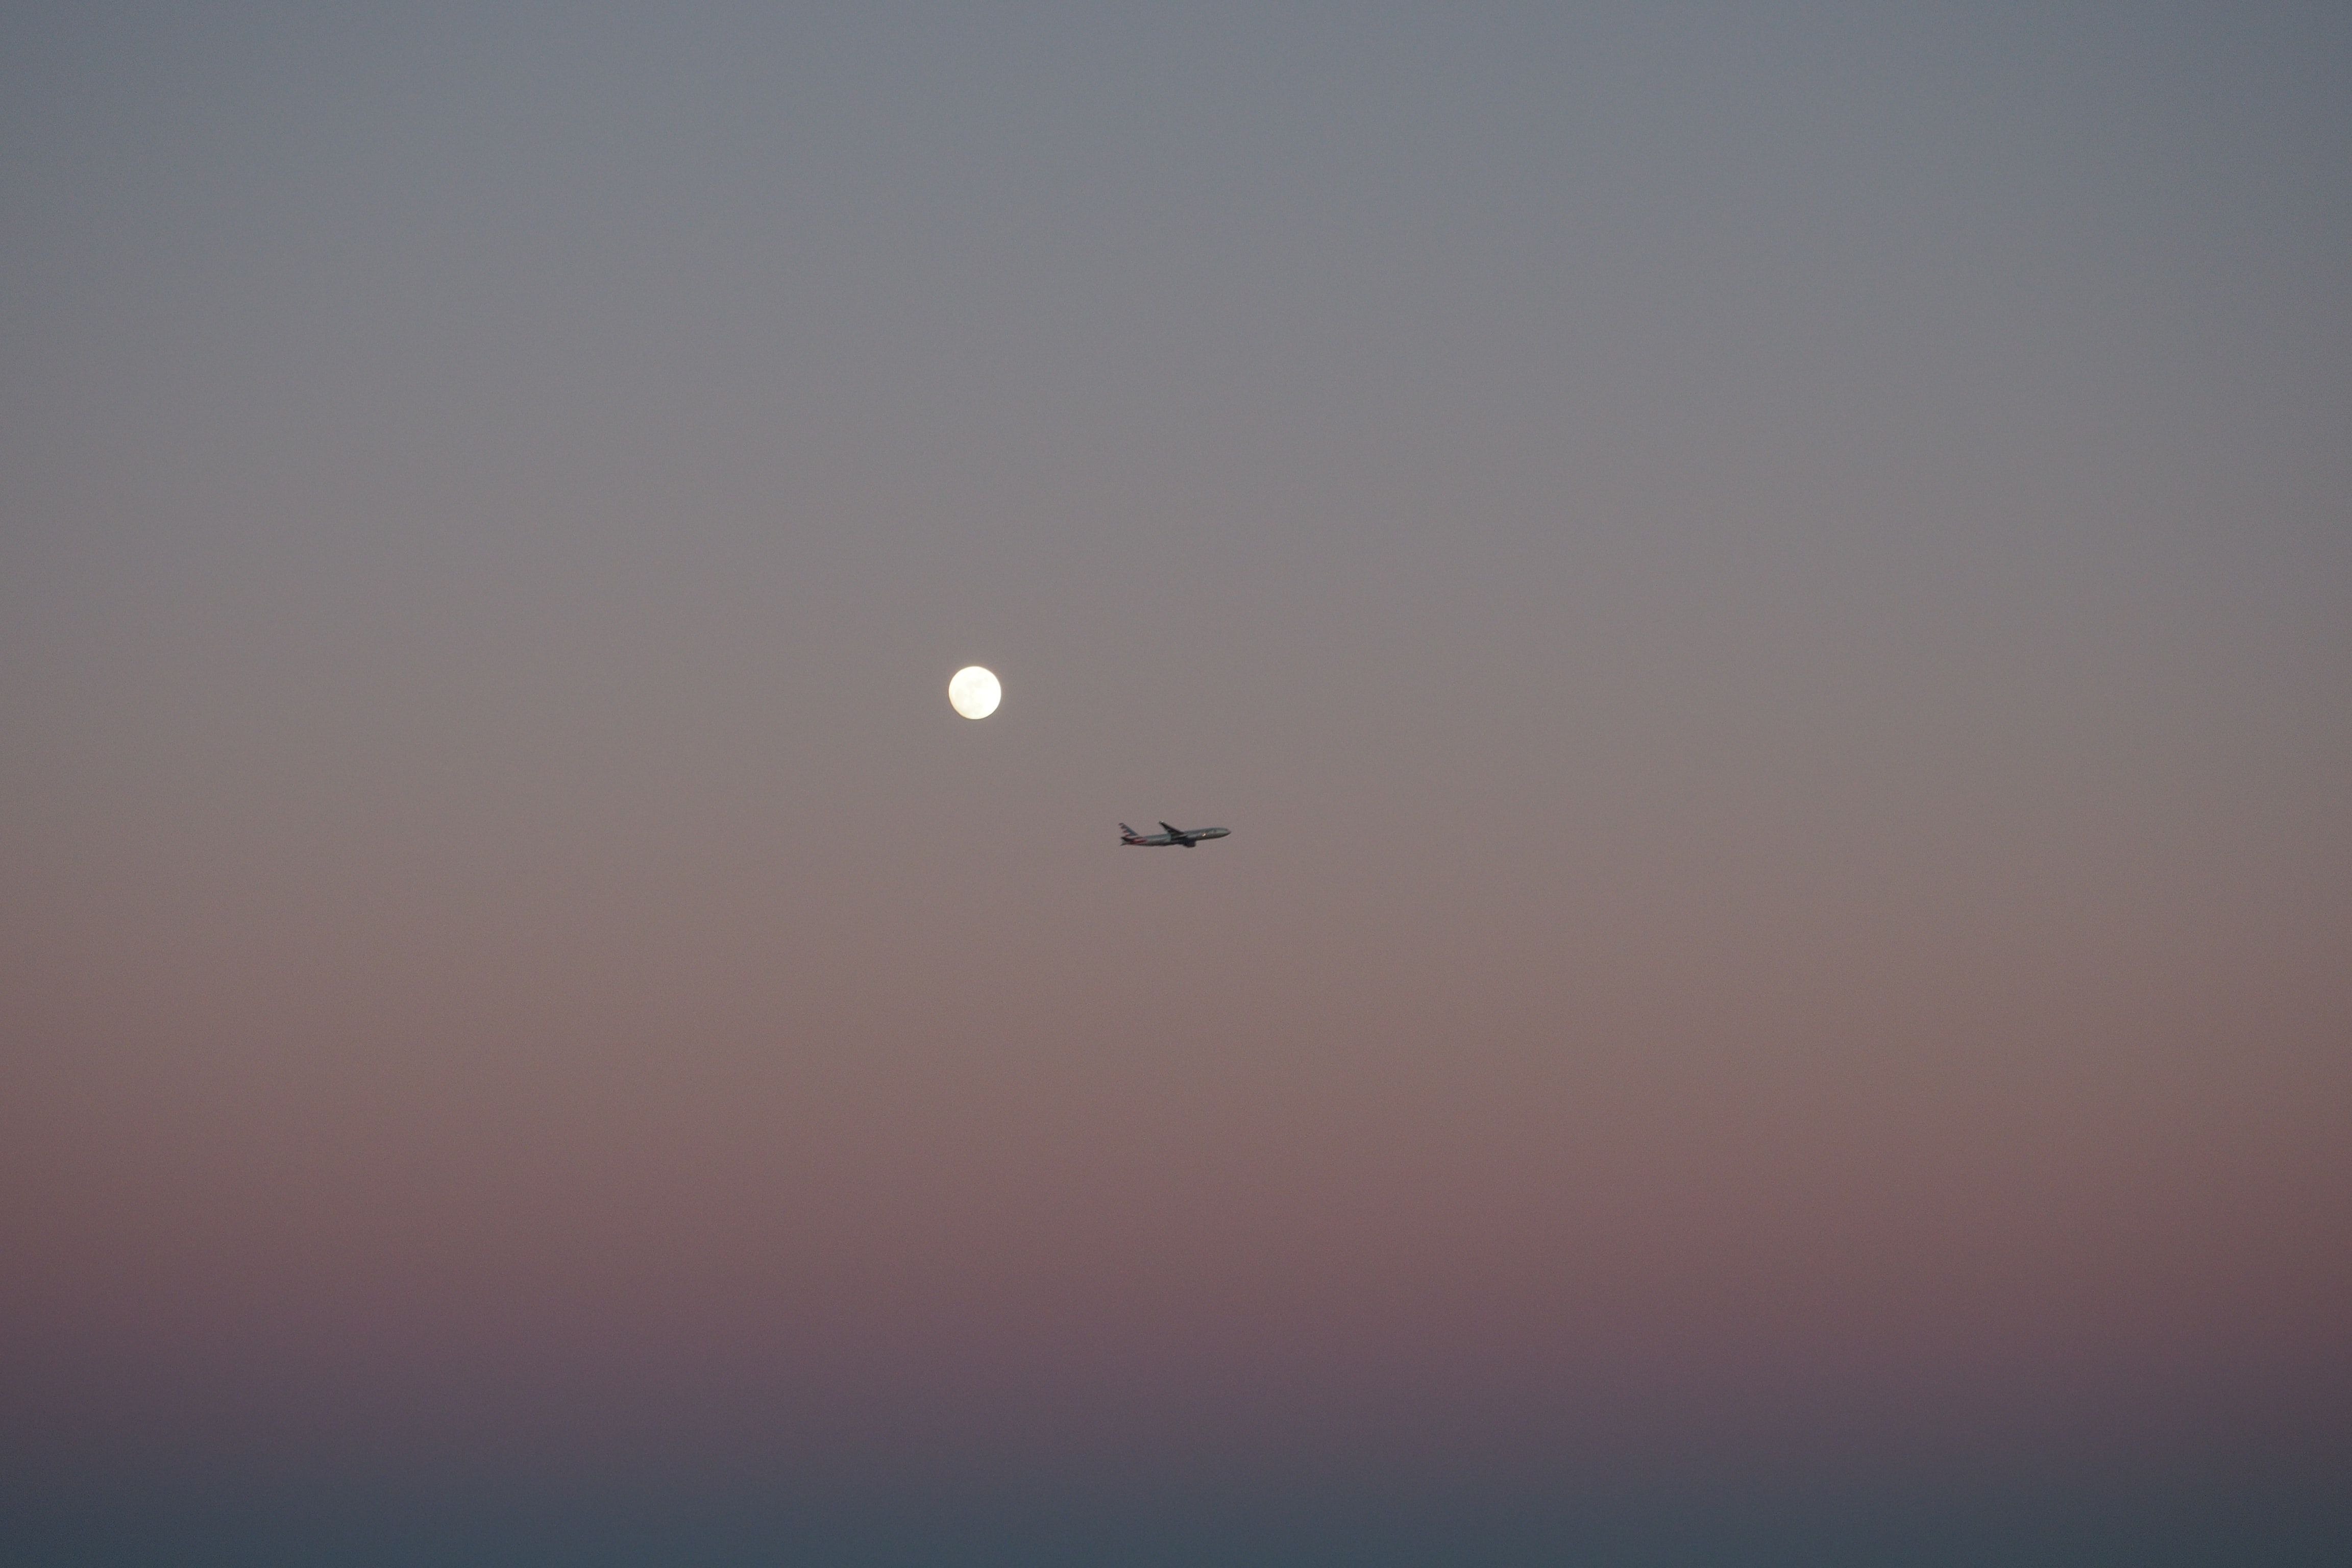 An airplane flies across a pale sky as a full moon shines on